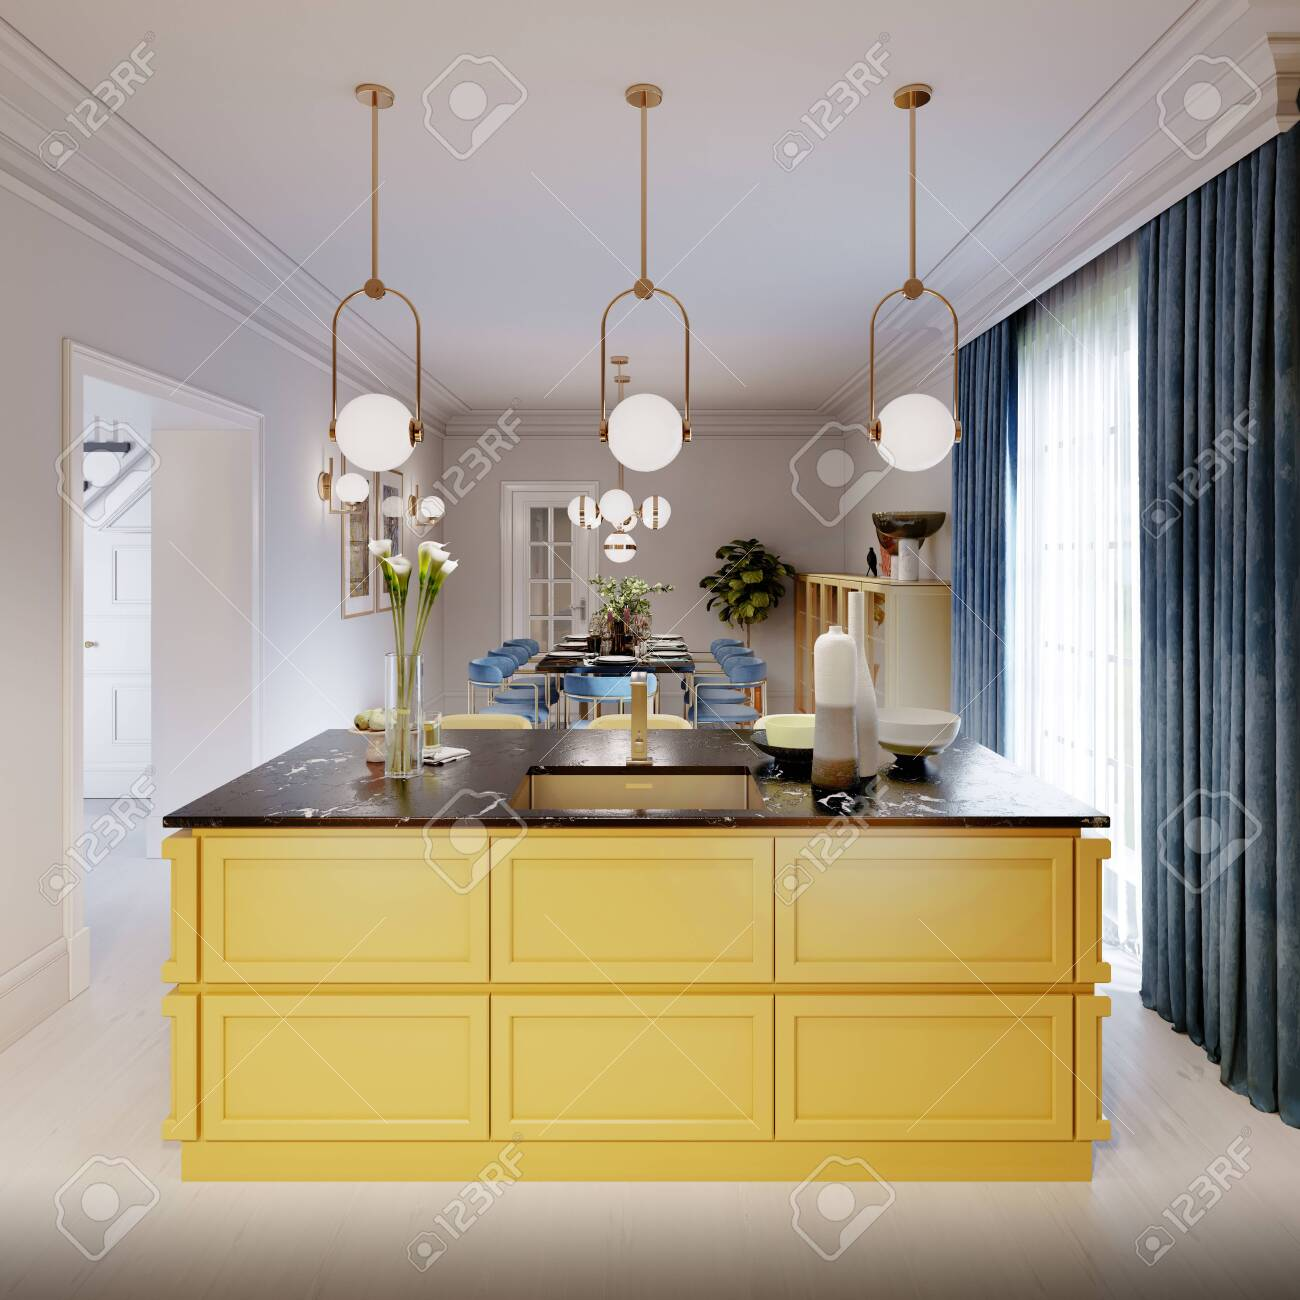 Modern Kitchen Island In Yellow Kitchen With Pendant Lamp Over Stock Photo Picture And Royalty Free Image Image 150291459